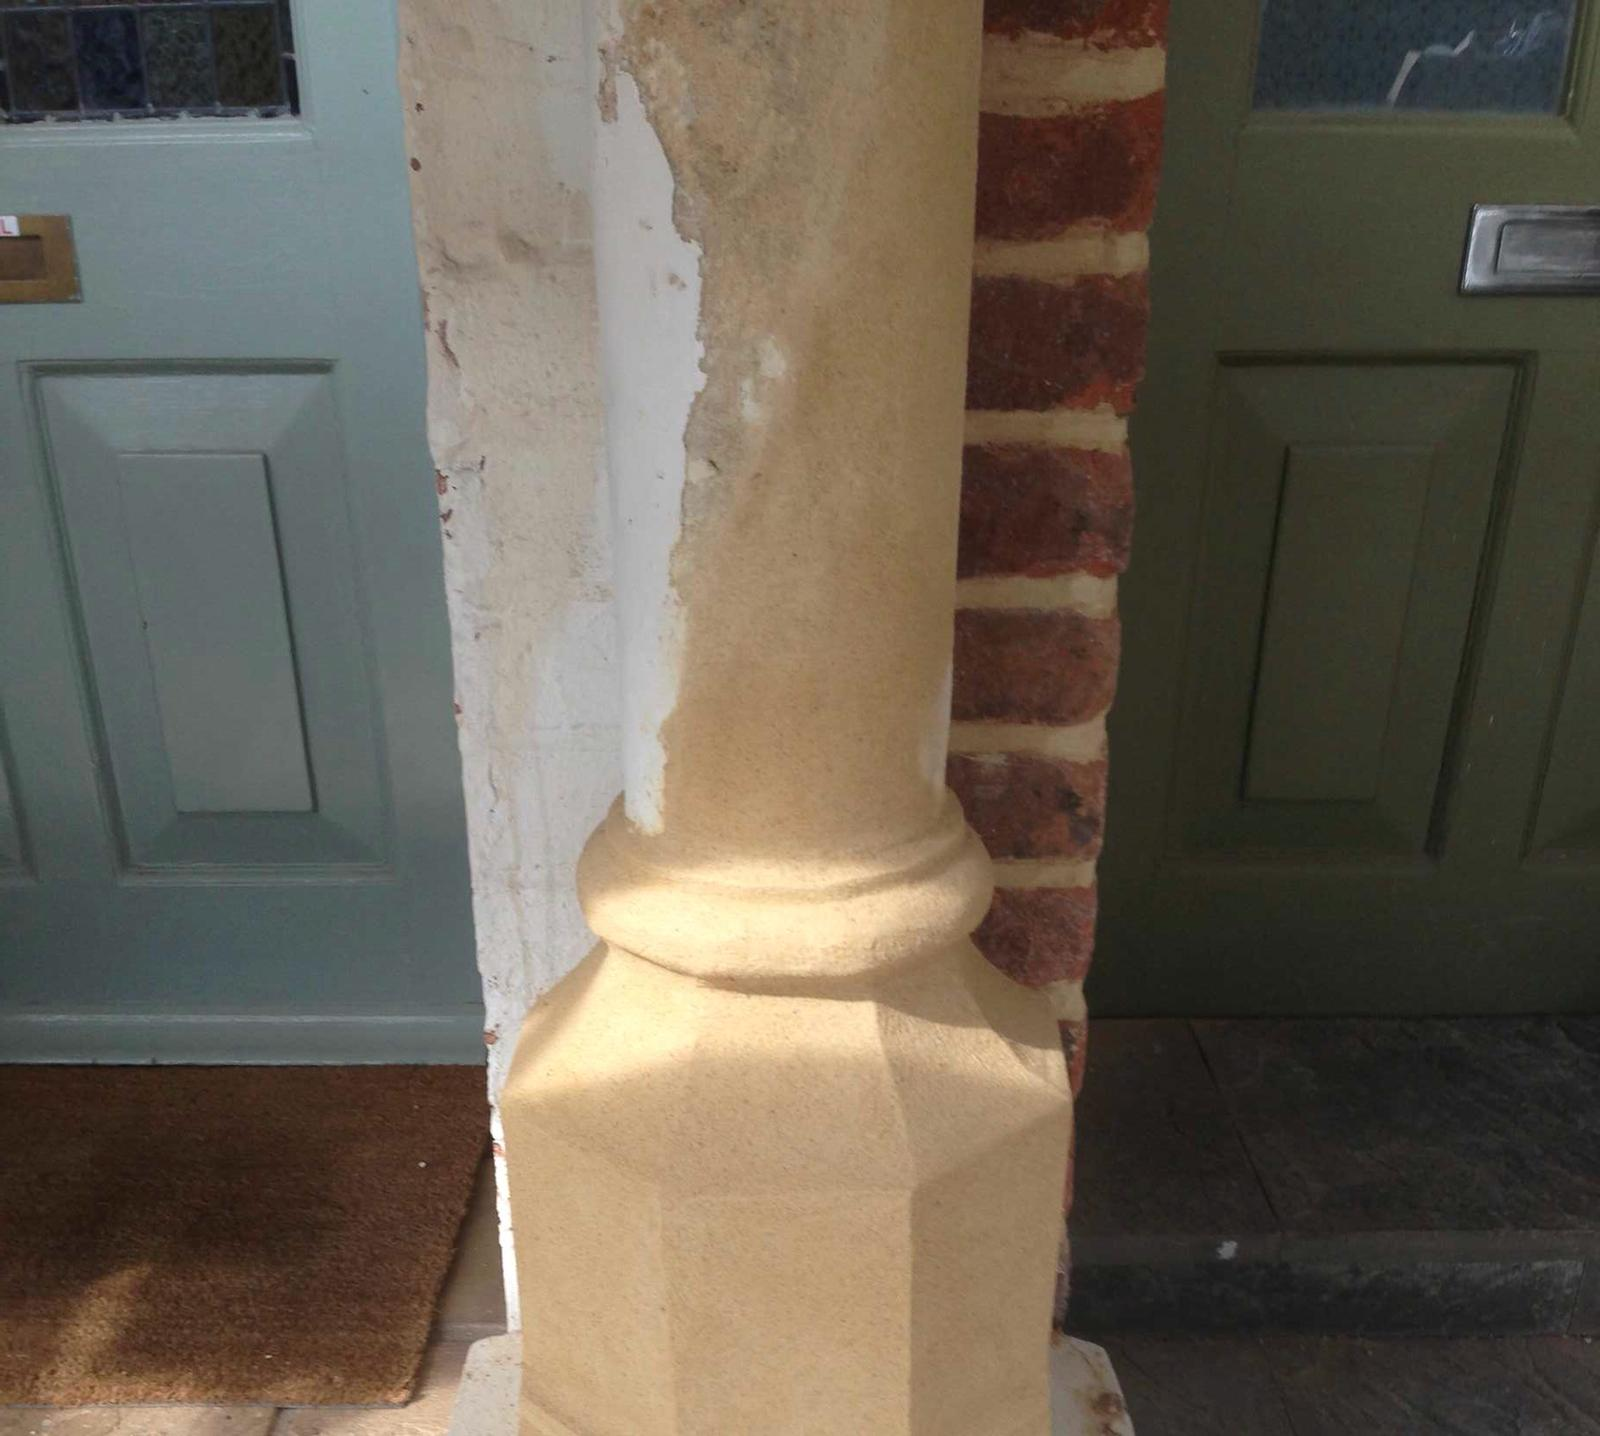 Stone Repair Project 2 - After